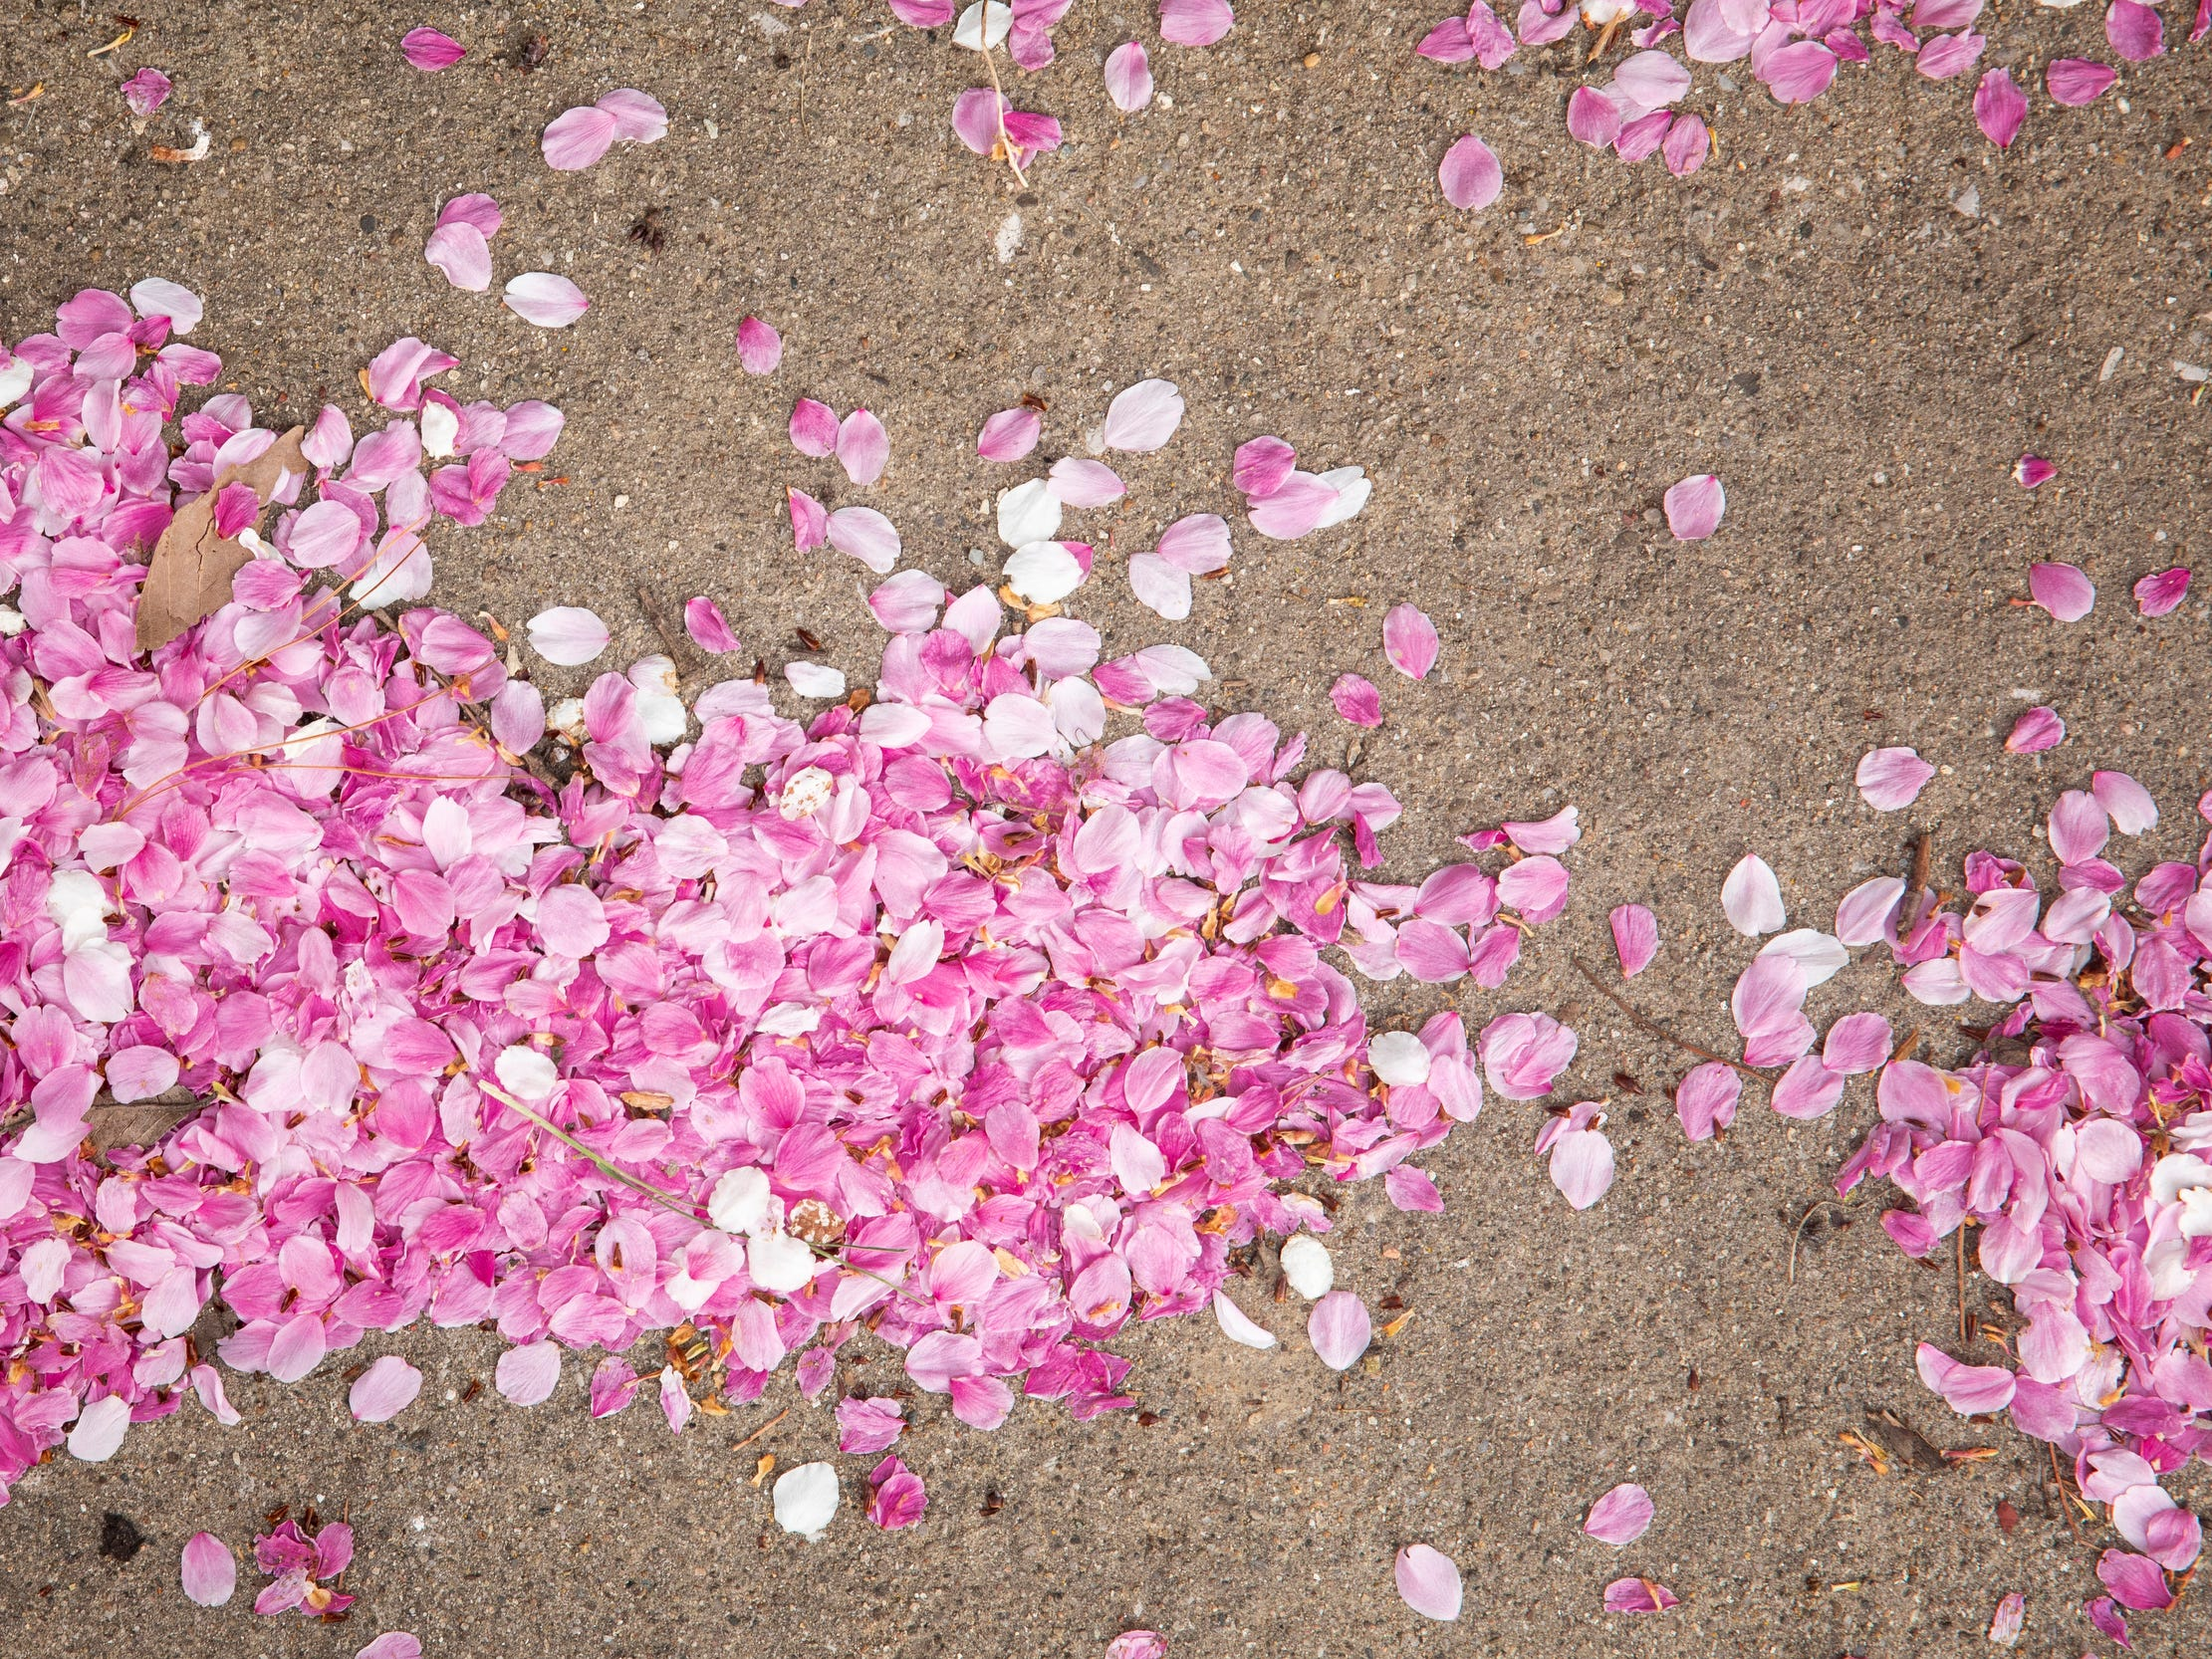 Cherry blossom petals gather on Spring Street in Pendleton Thursday, April 11, 2019.